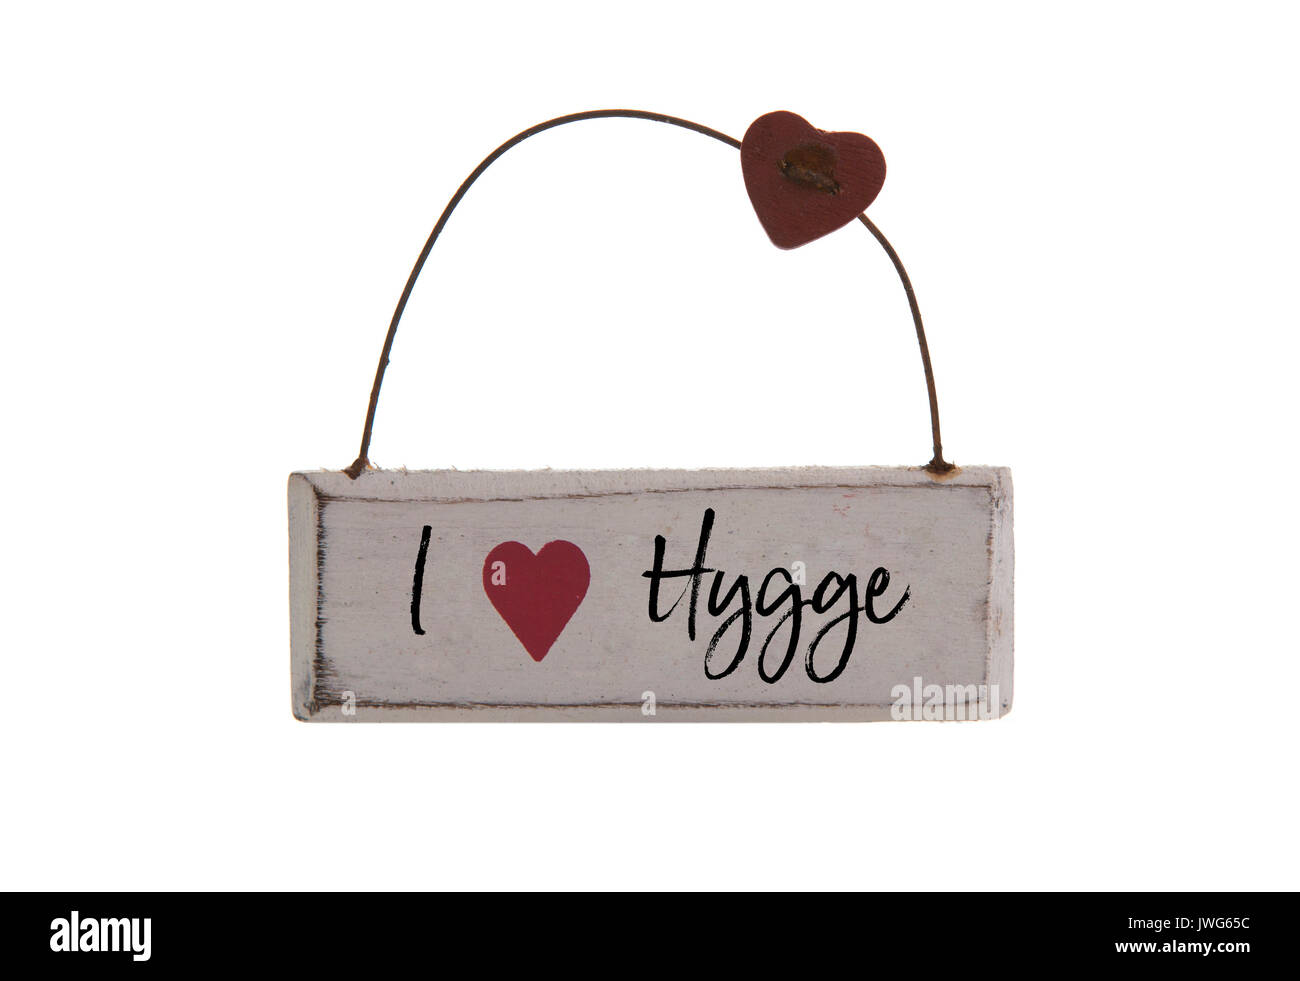 I Love HYGGE sign on a white background, Hygge is a Danish and Norwegian word which can be described as a quality of cosiness and comfortable - Stock Image